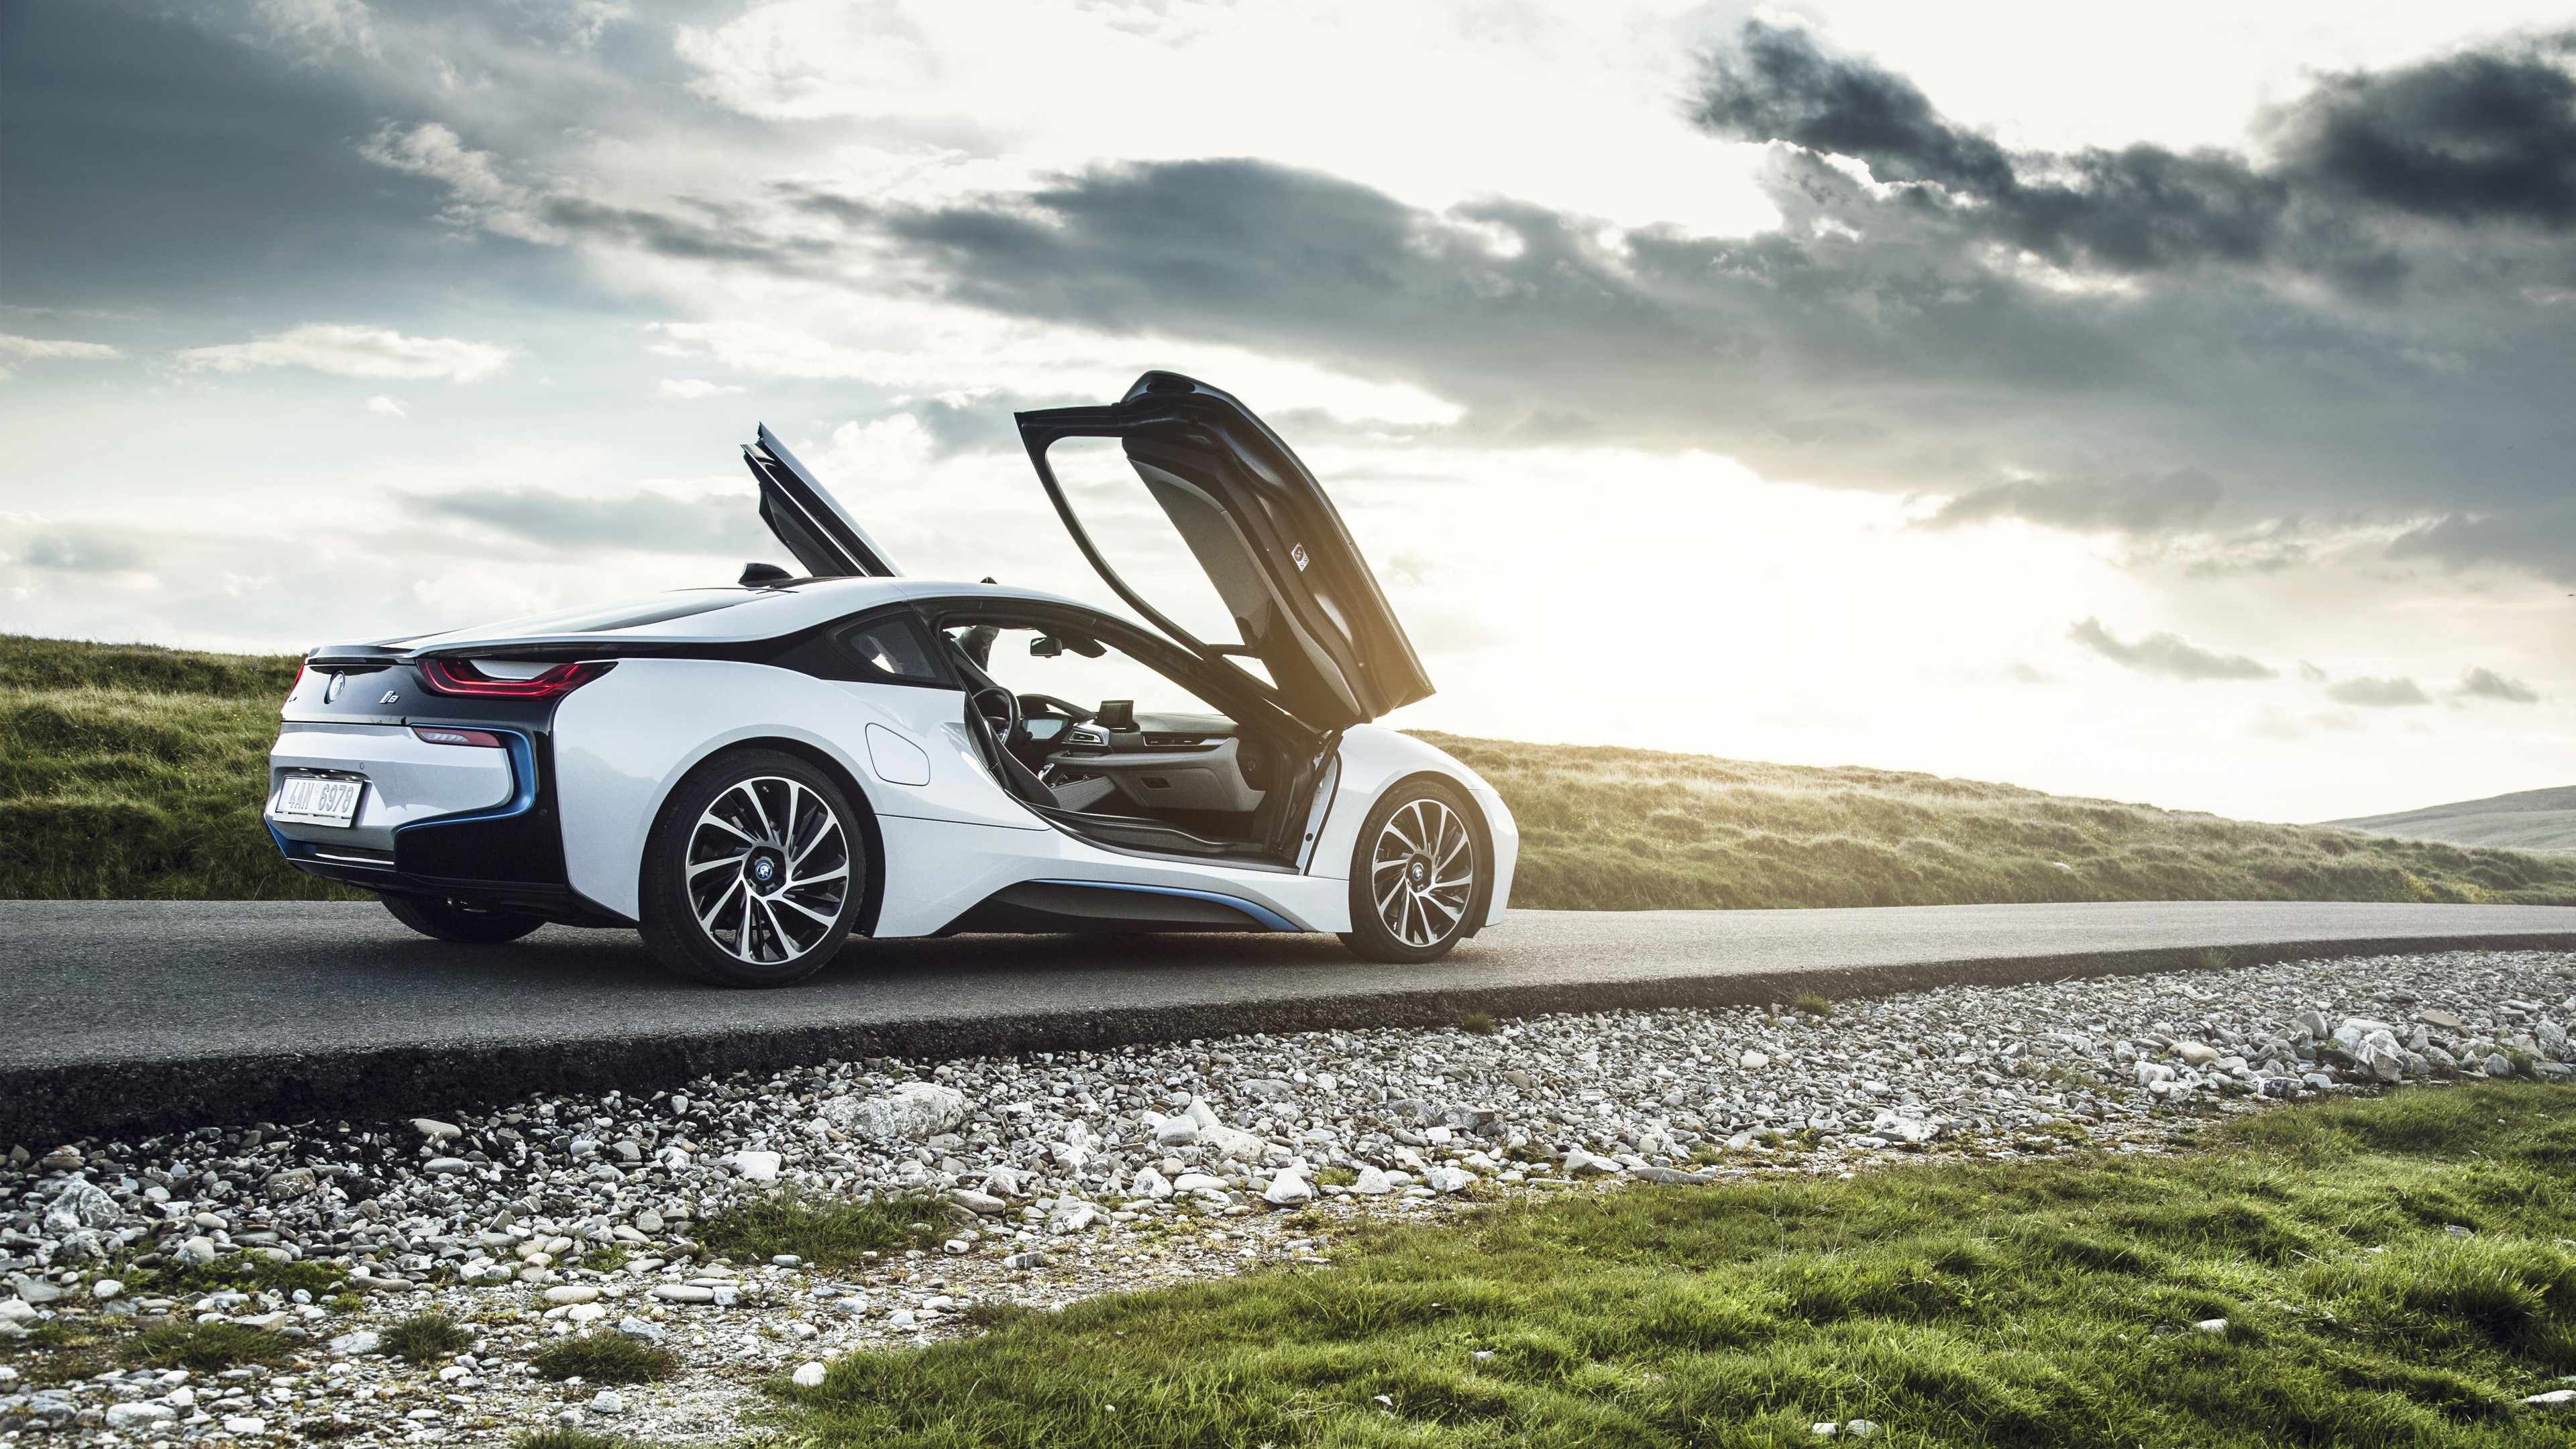 Bmw i8 side view wallpaper hd car wallpapers id 6004 - Car side view wallpaper ...